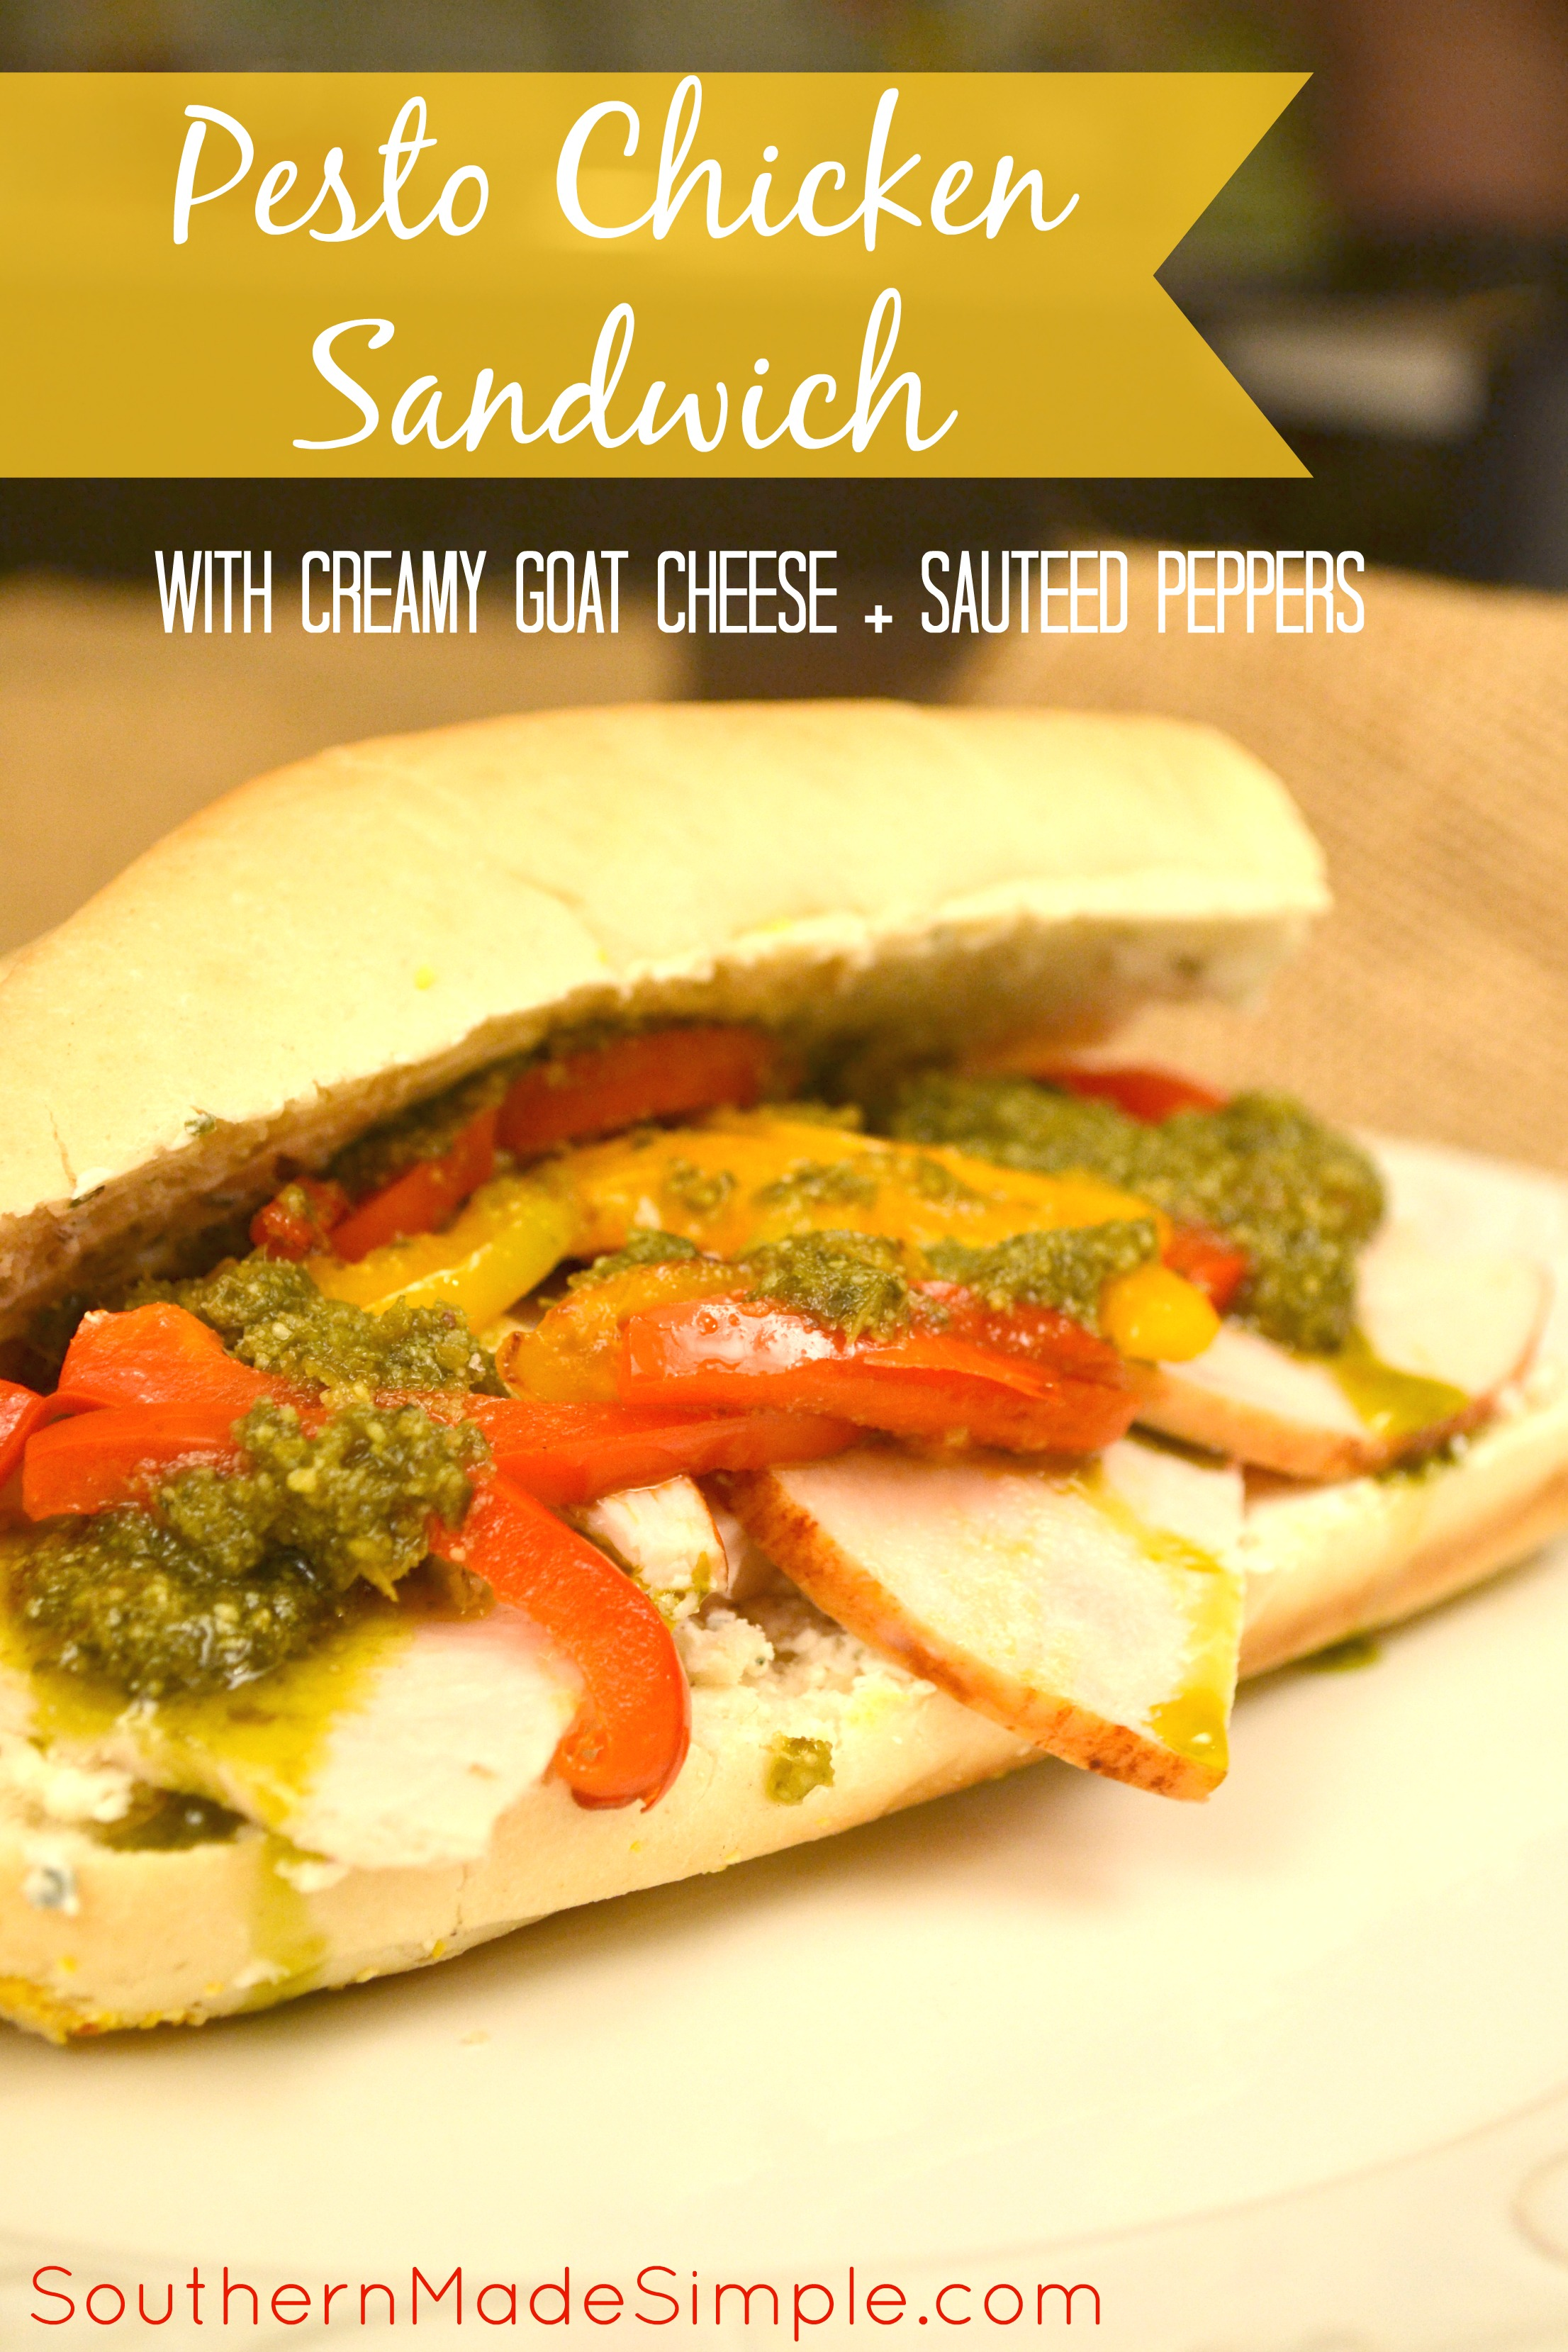 Chicken Pesto Sandwich with creamy goat cheese and sauteed peppers. This sandwich is to die for!